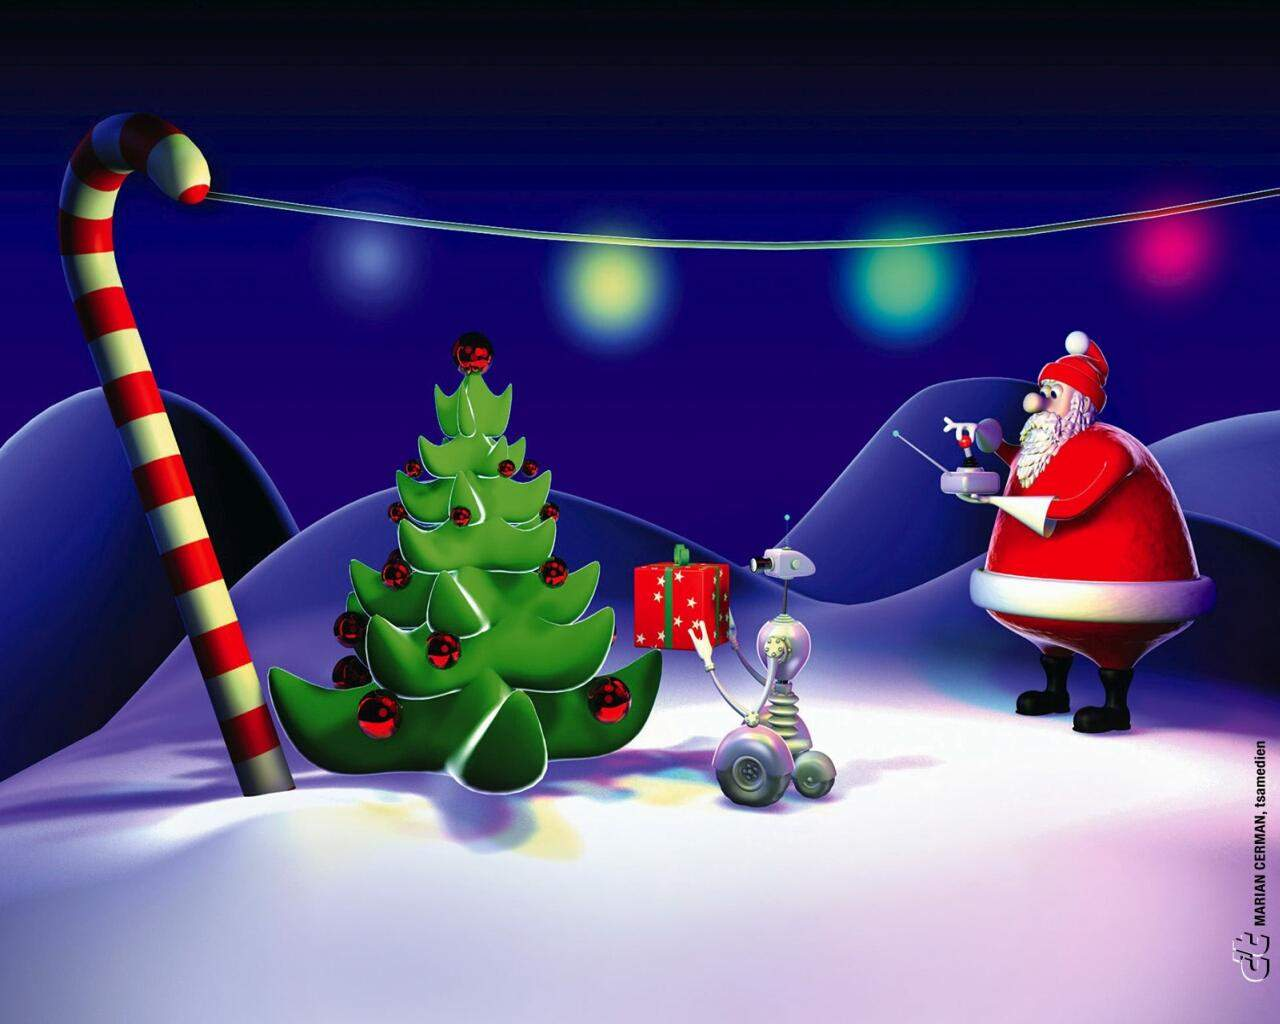 Animated Christmas Wallpapers For Desktop That You Can Use 1280x1024